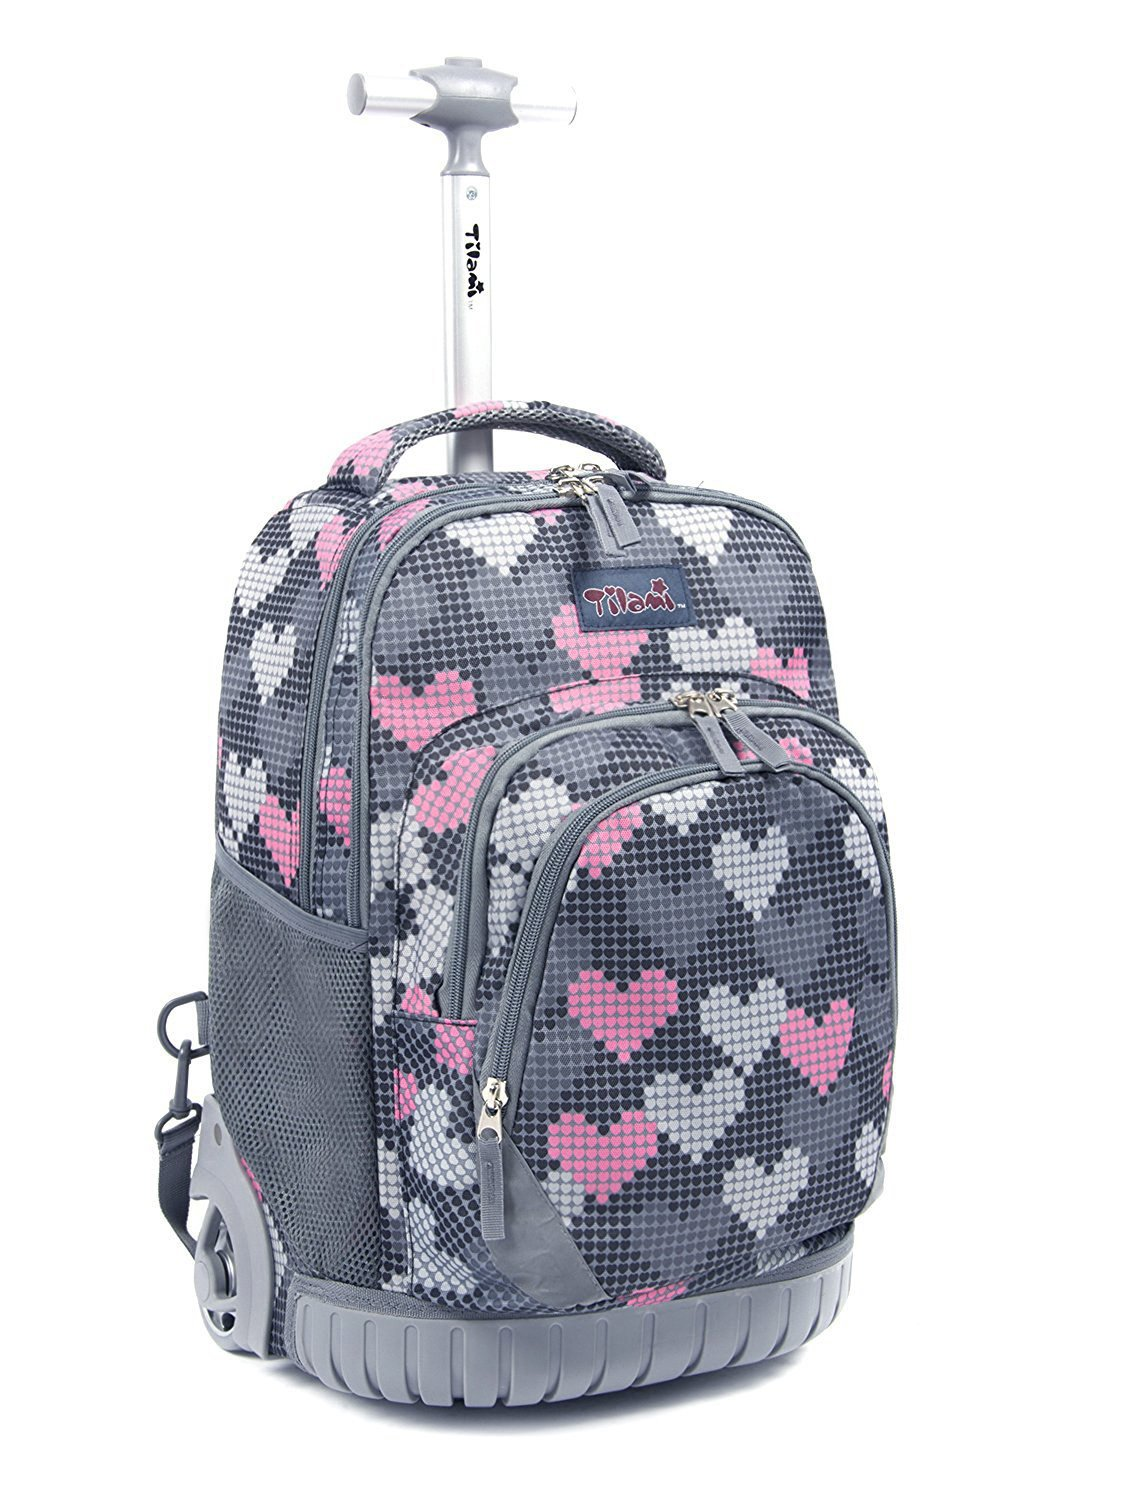 Tilami Rolling Backpack Armor Luggage School Travel Book Laptop 18 Inch Multifunction Wheeled Backpack for Kids and Students (Falling Love 1)